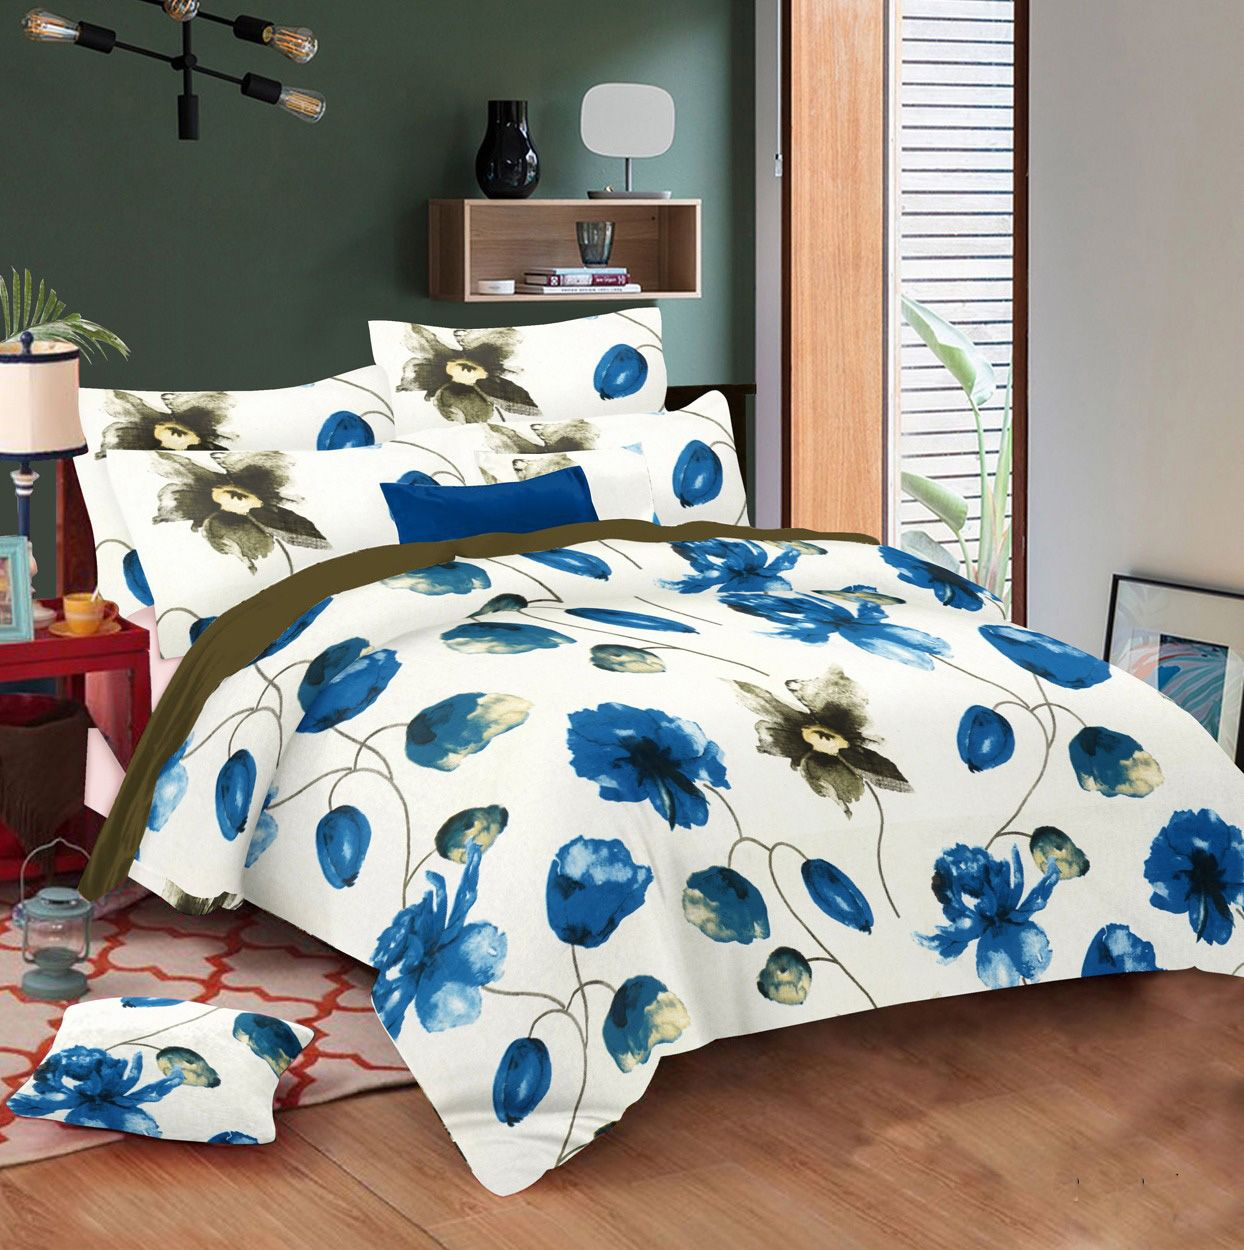 The Export World Is Hotel Bed Linen Suppliers India In 2020